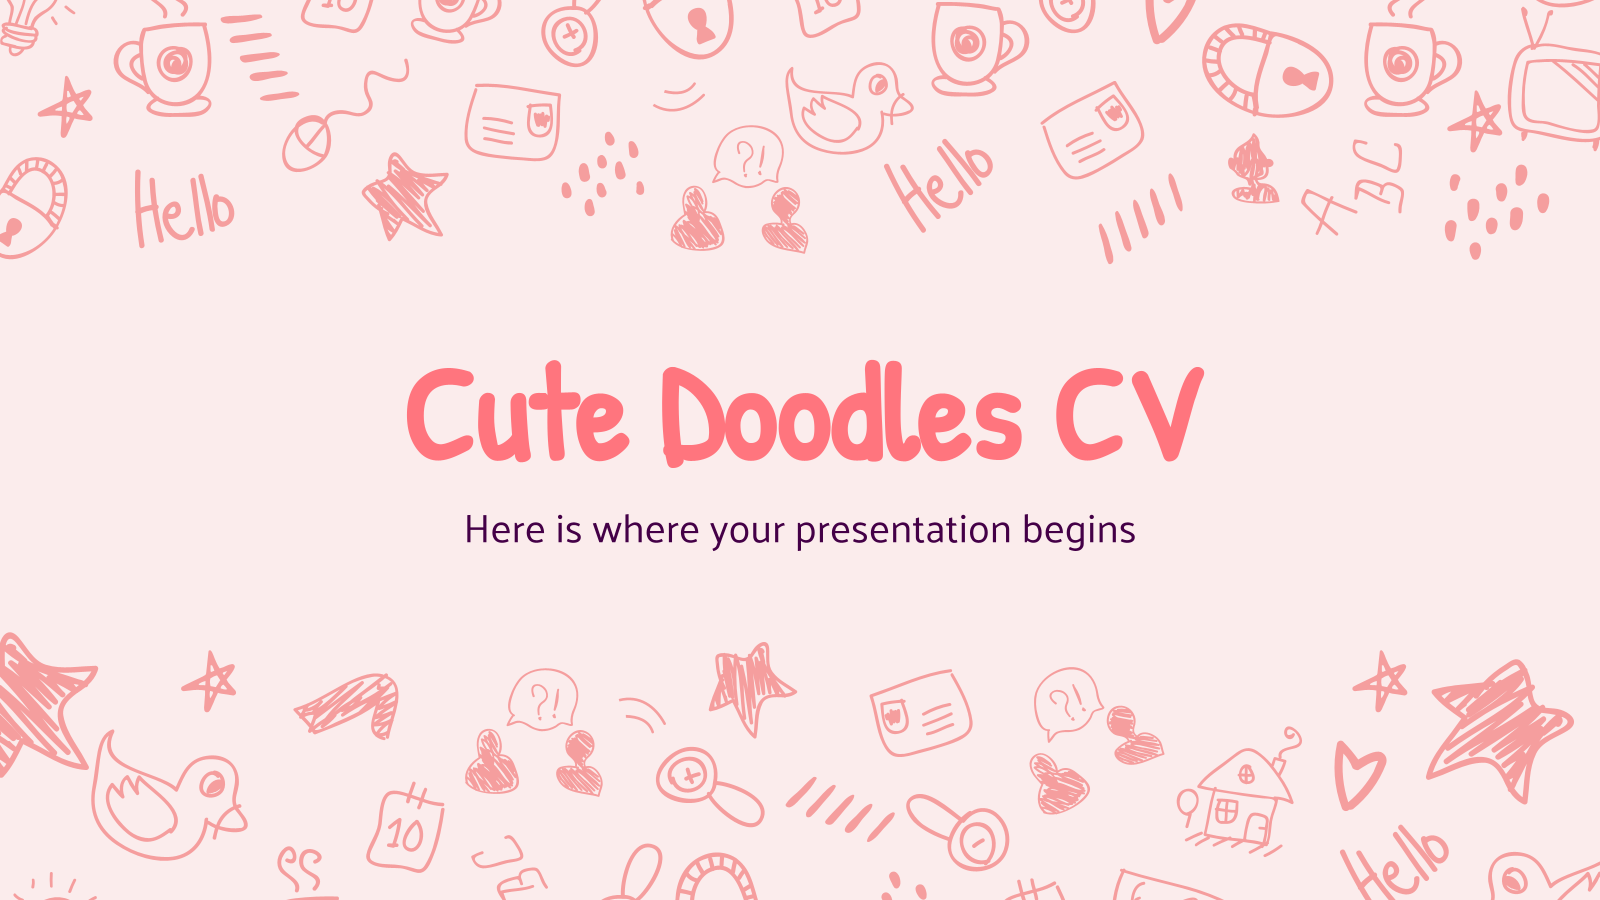 Cute Doodles CV presentation template